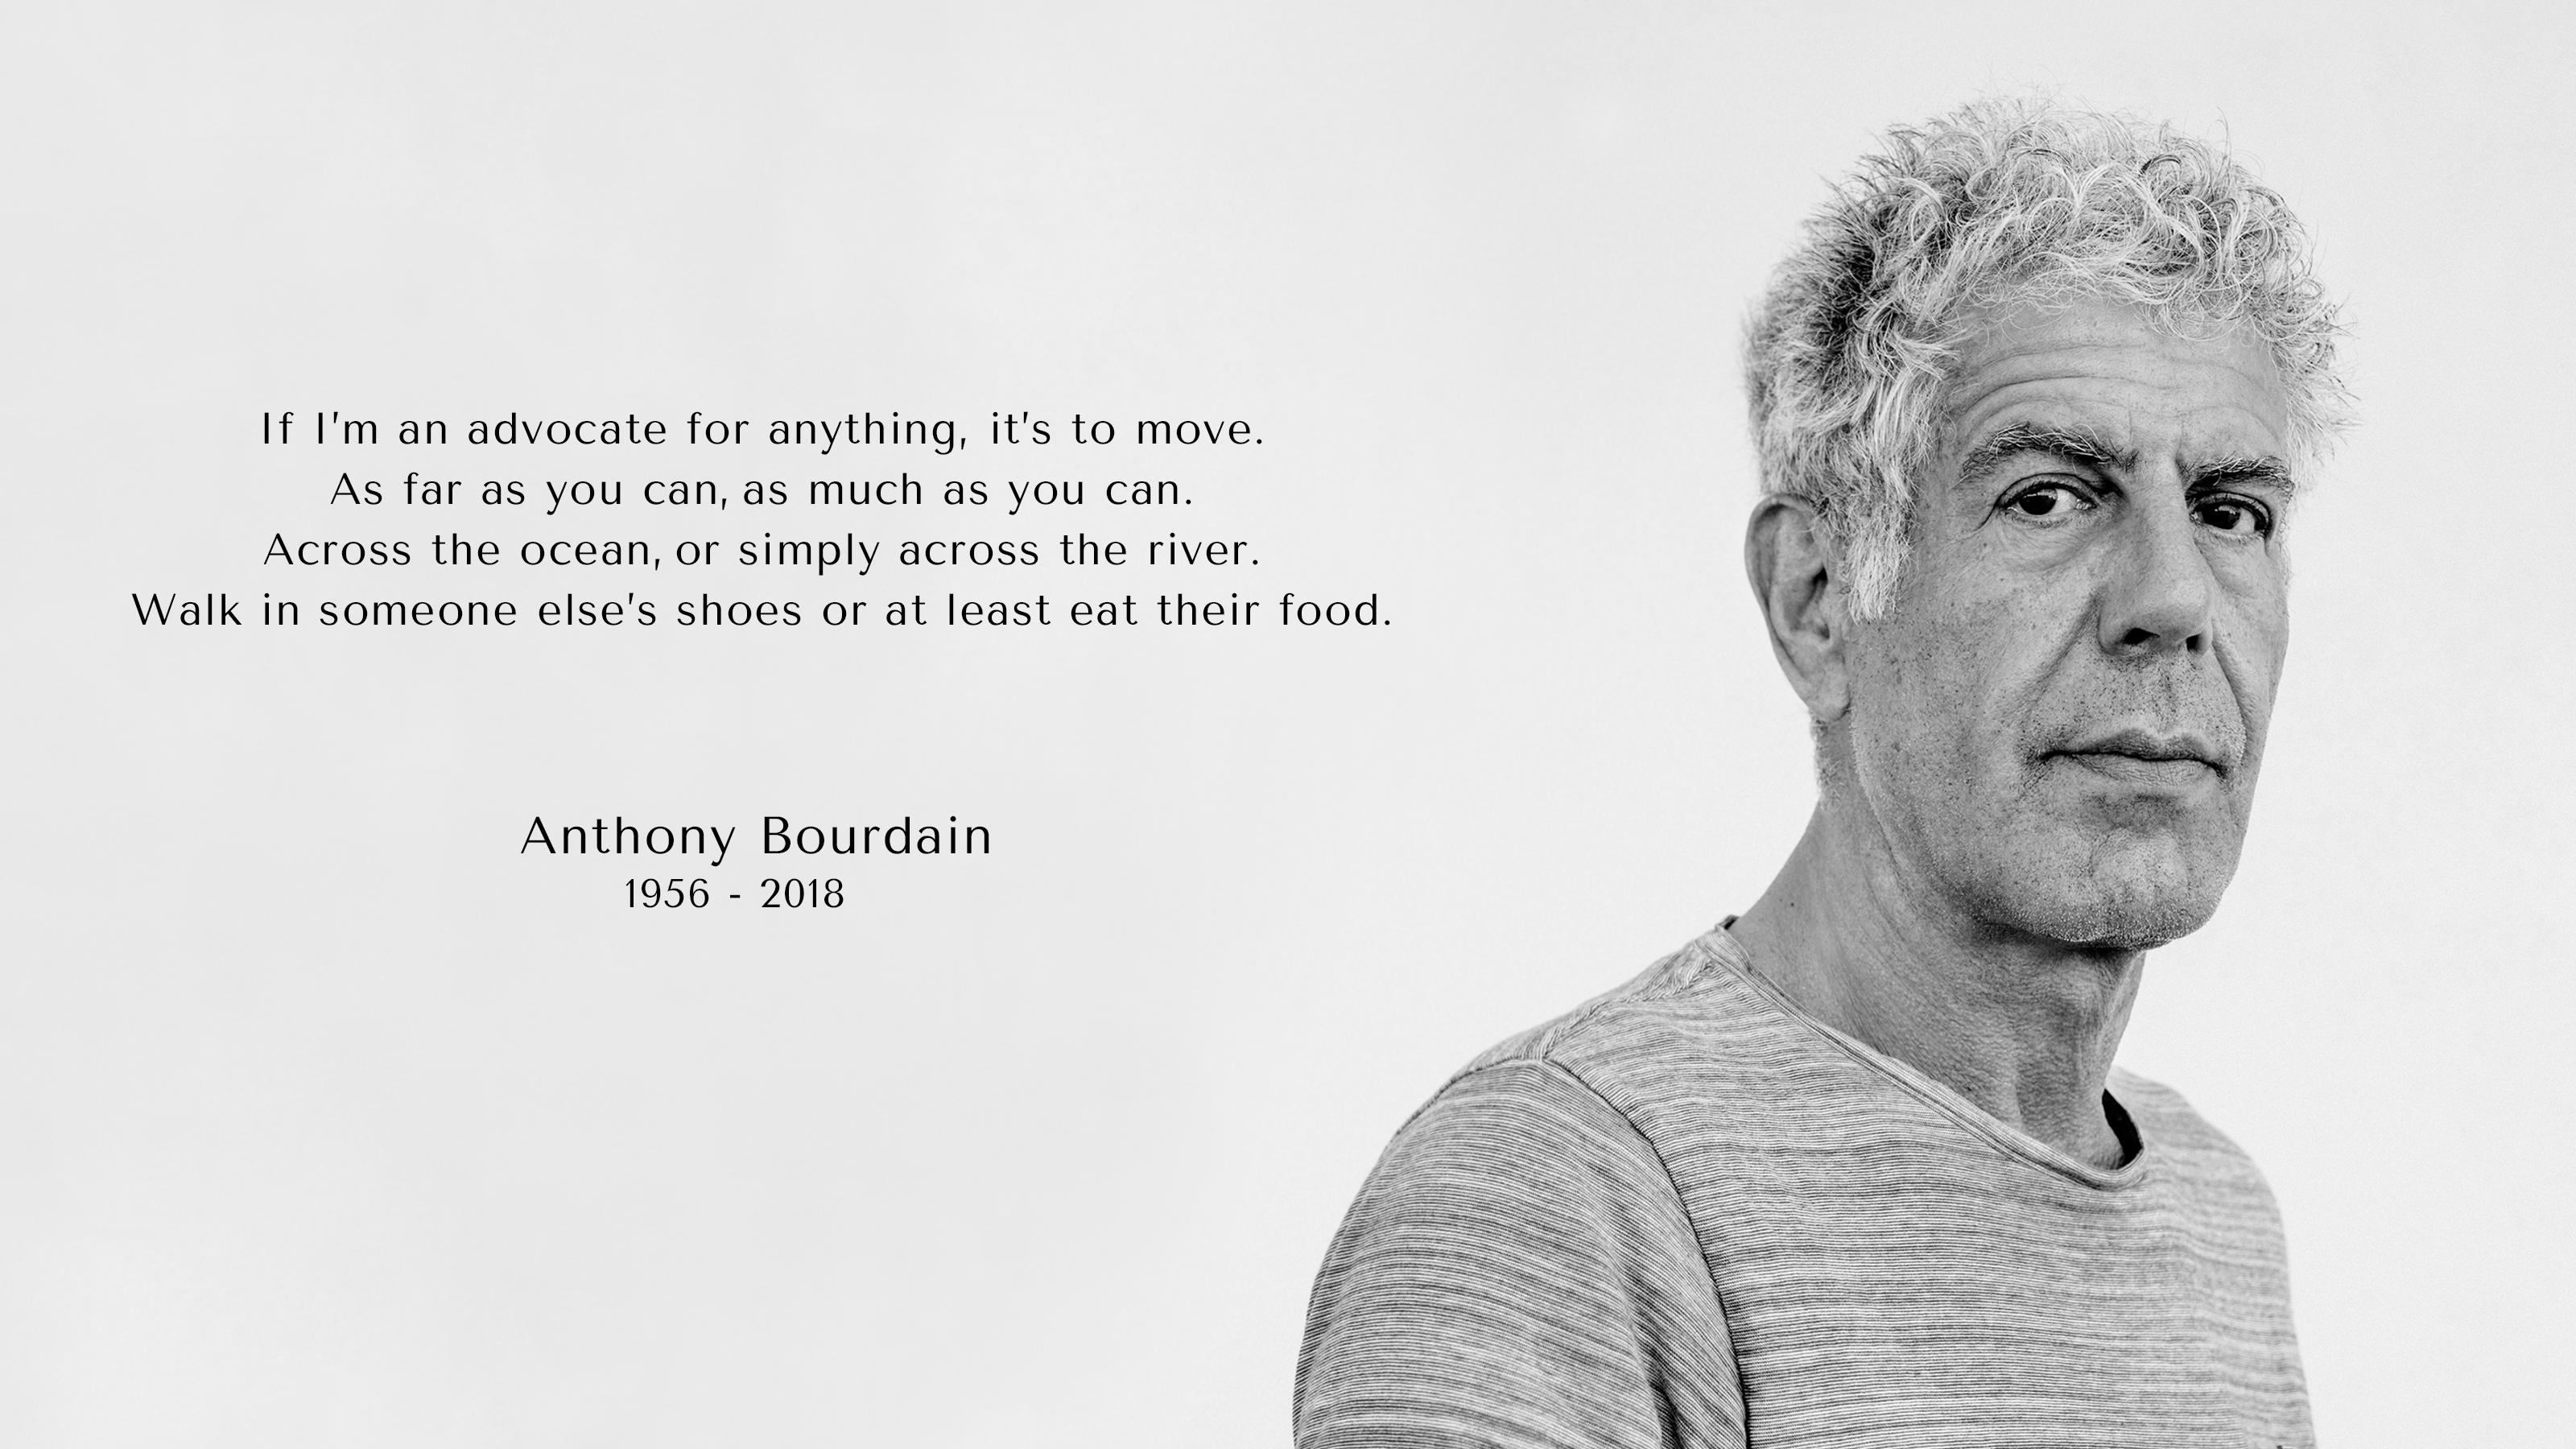 Anthony Bourdain, 1956–2018